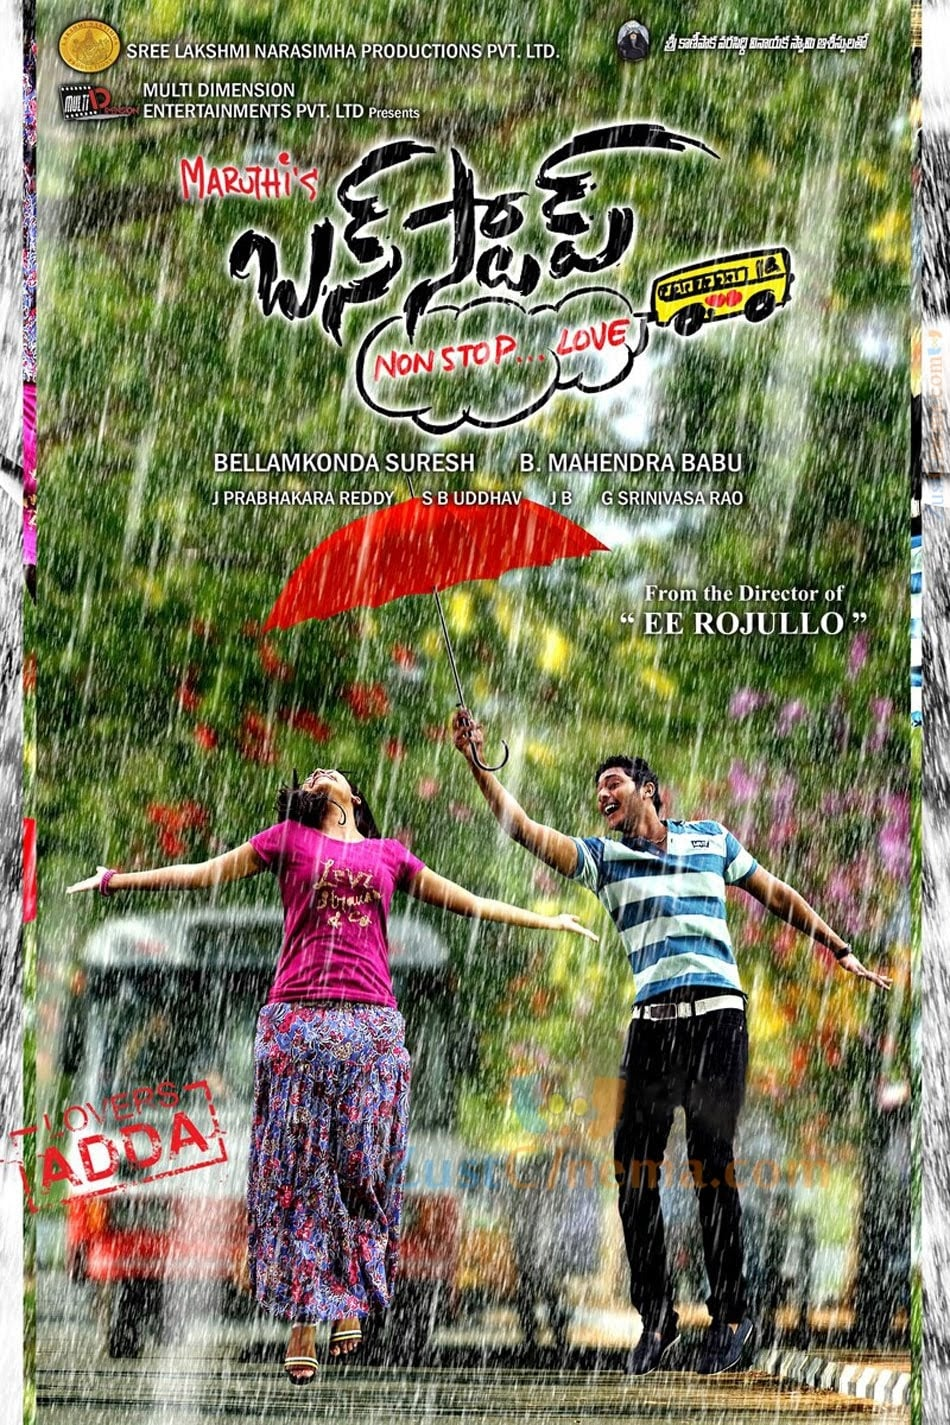 Bus Stop Movie Streaming Online Watch on MX Player, Sun NXT